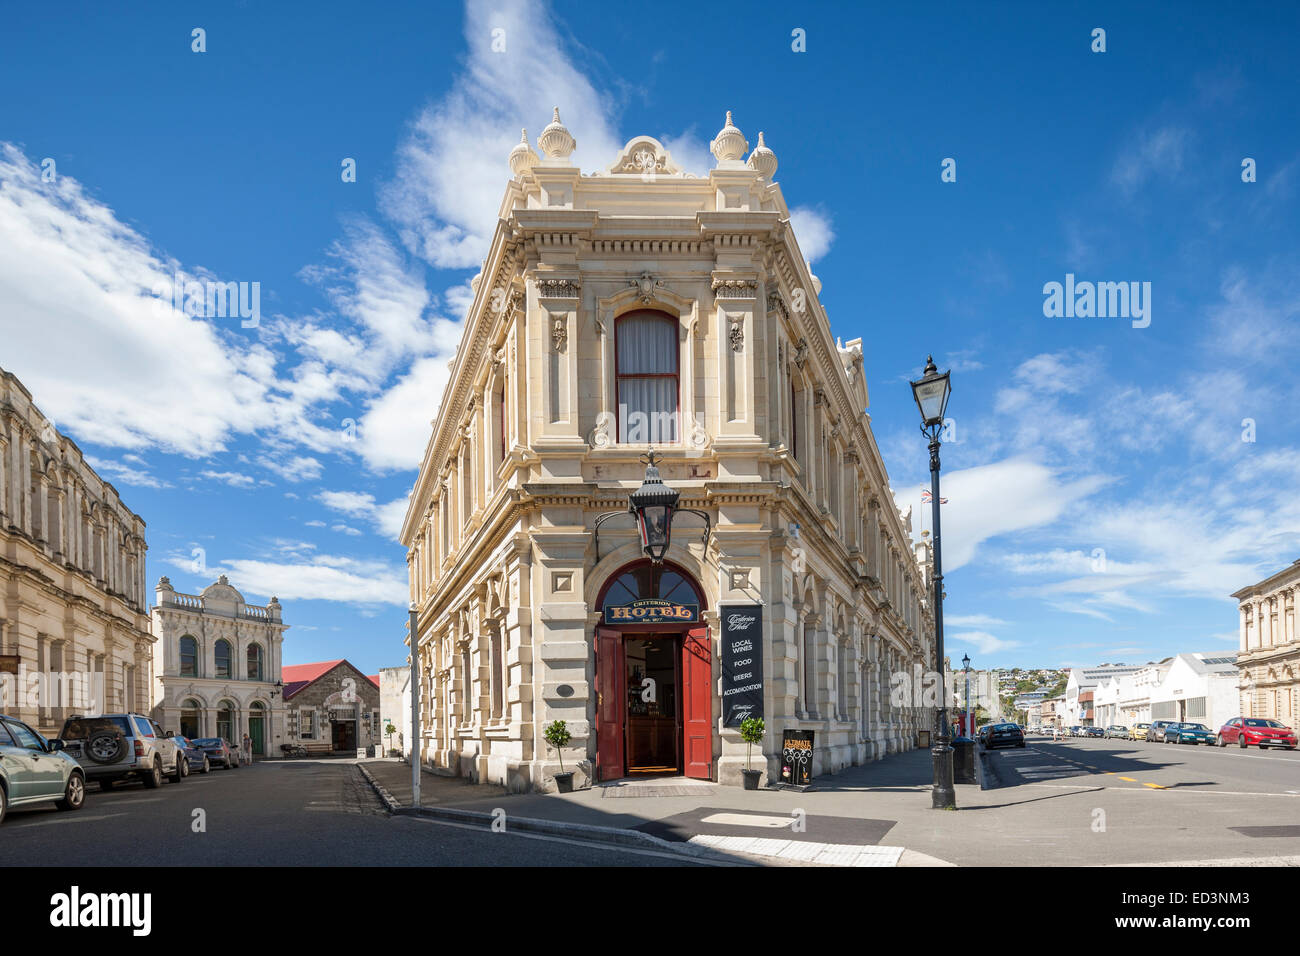 New Zealand Oamaru The Criterion Hotel And Other Old